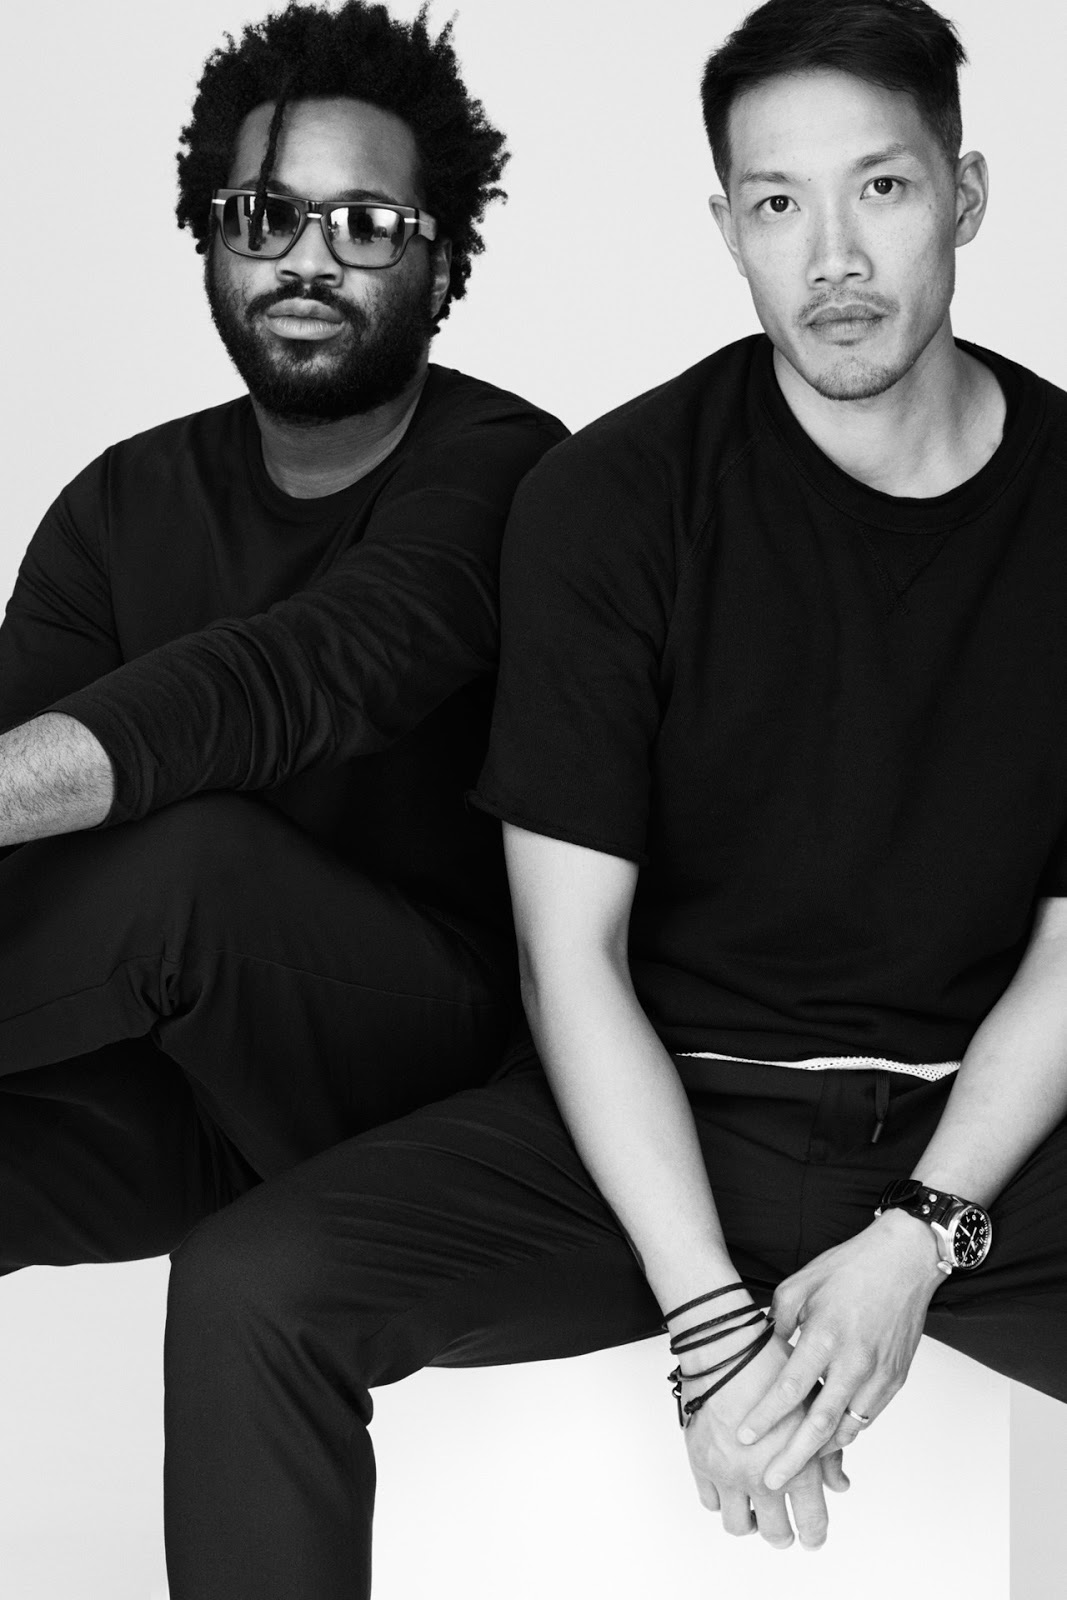 Dao-Yi Chow and Maxwell Osborne / DKNY creative directors / via fashioned by love british fashion blog / fashion news